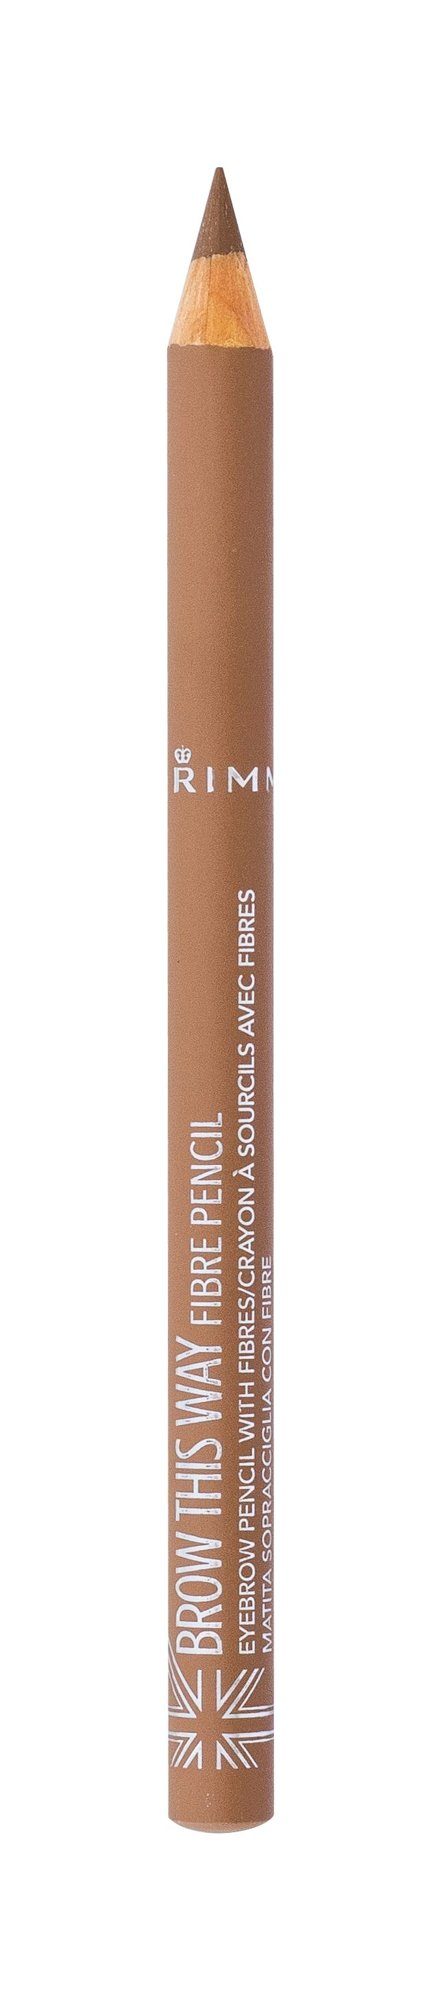 Rimmel London Brow This Way Fibre Pencil (Tužka na obočí, W, 1,08 g)